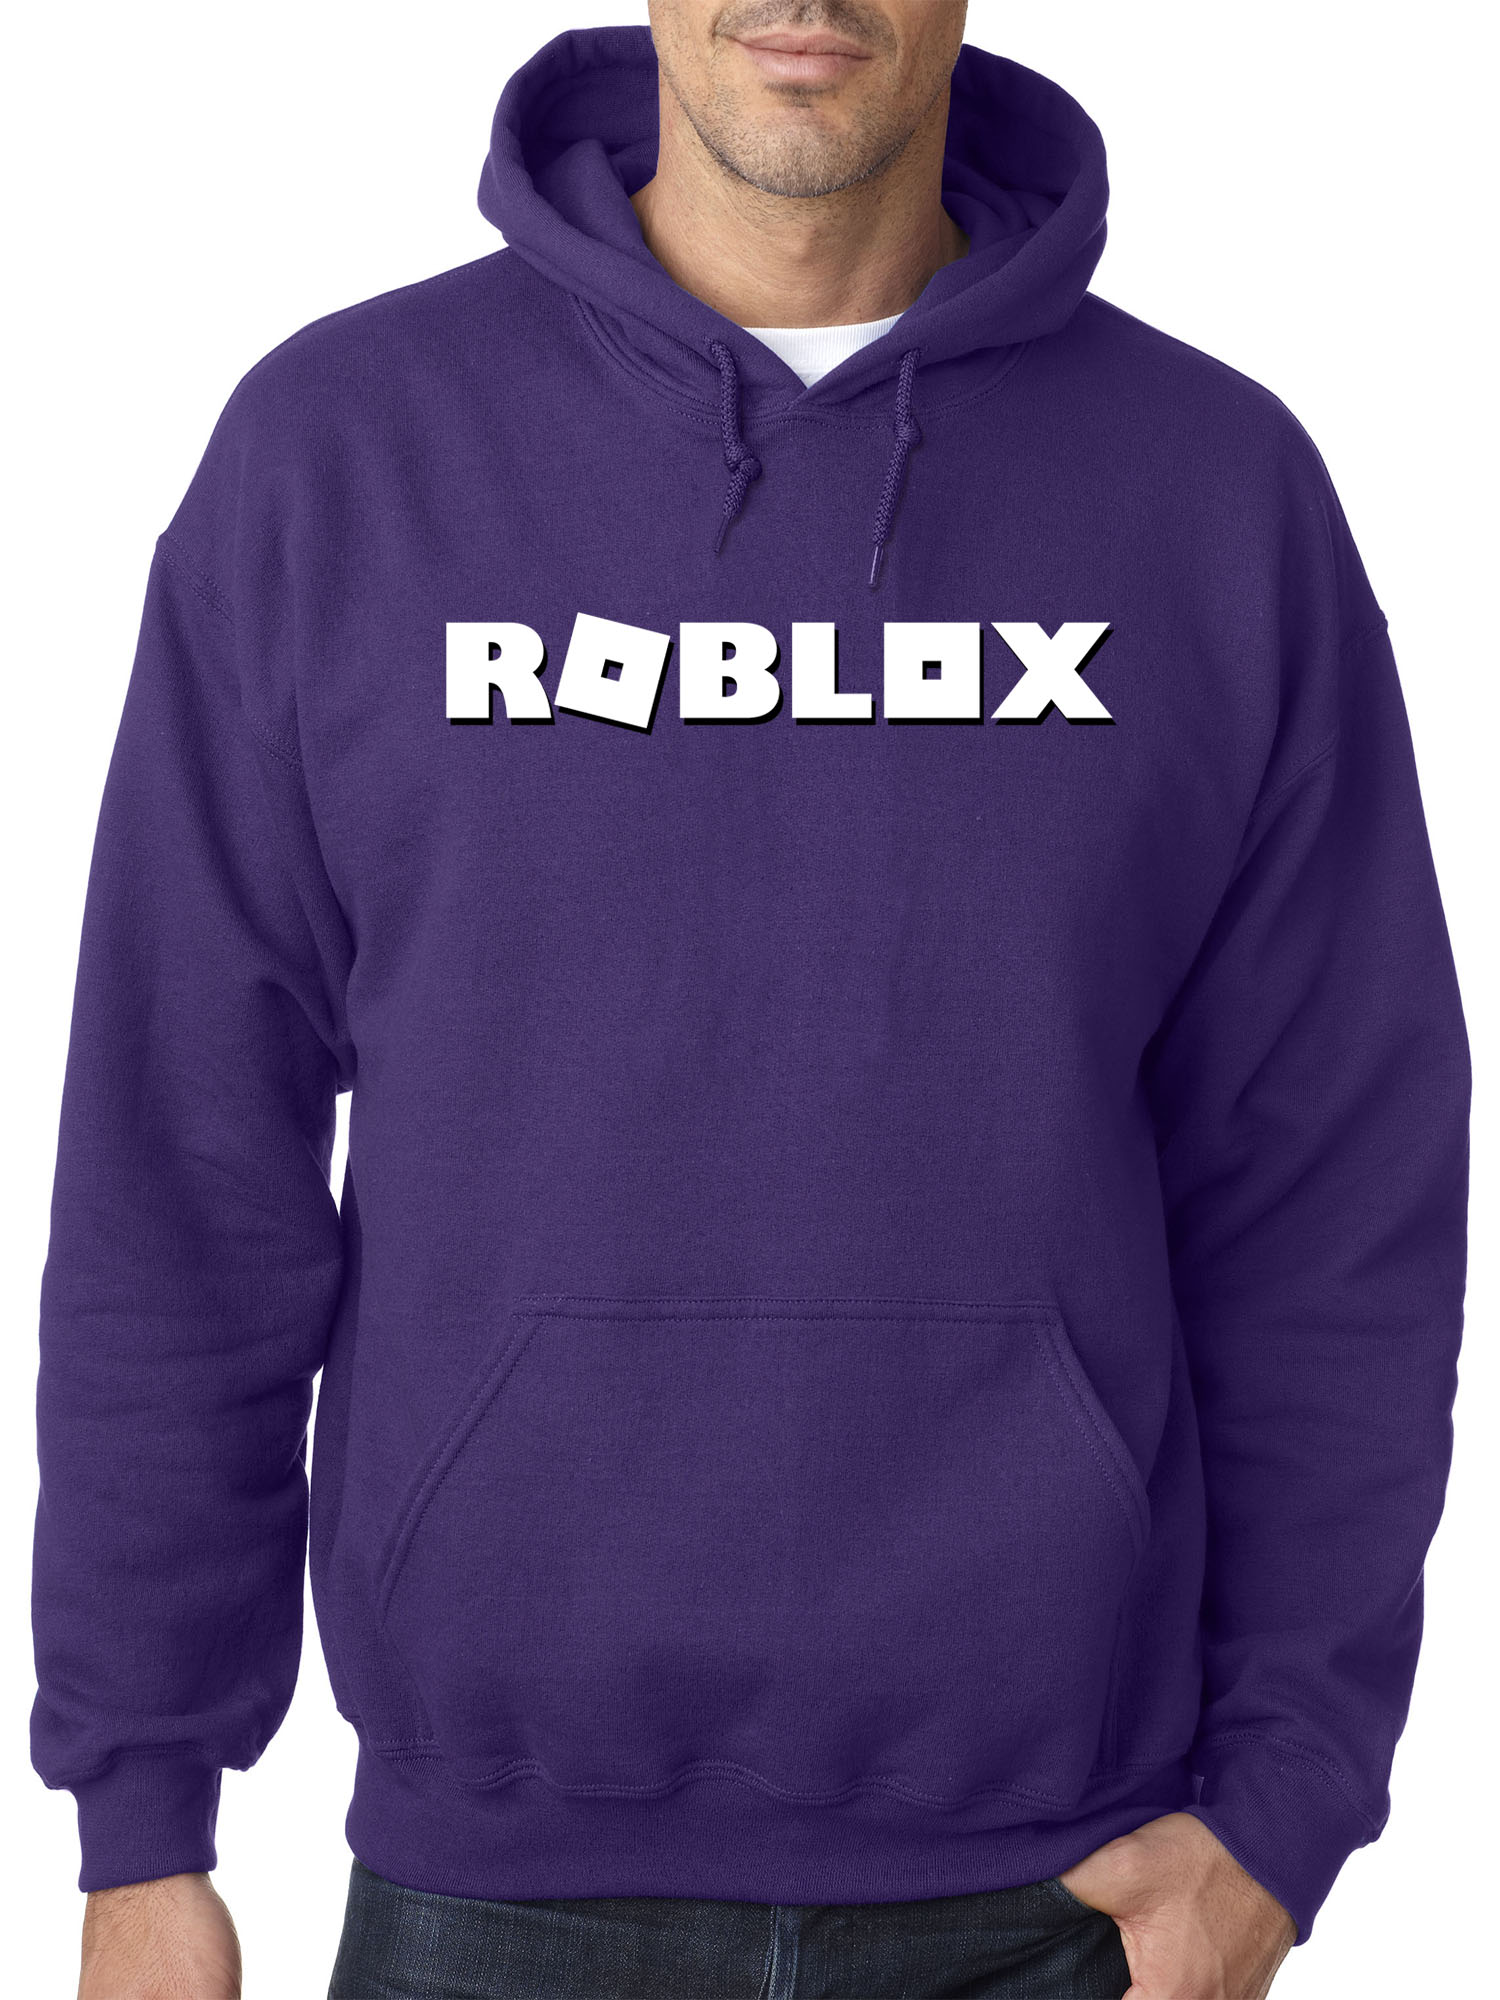 New Way 923 Adult Hoodie Roblox Logo Game Accent Sweatshirt Medium Purple - give me candy sweater roblox